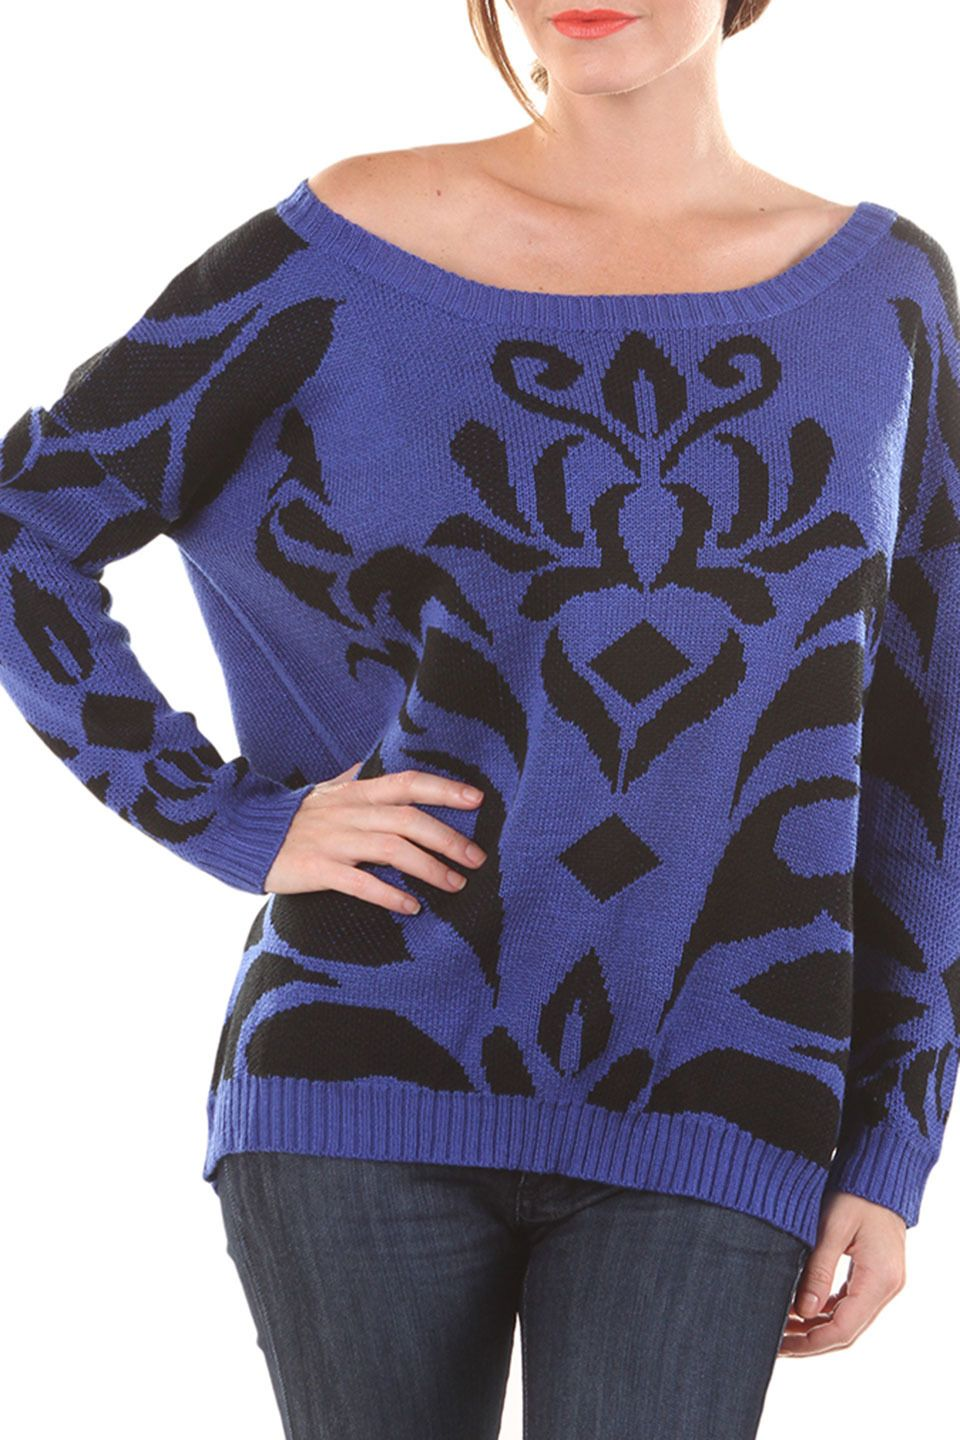 Very J Casey Sweater in Royal Blue - Beyond the Rack